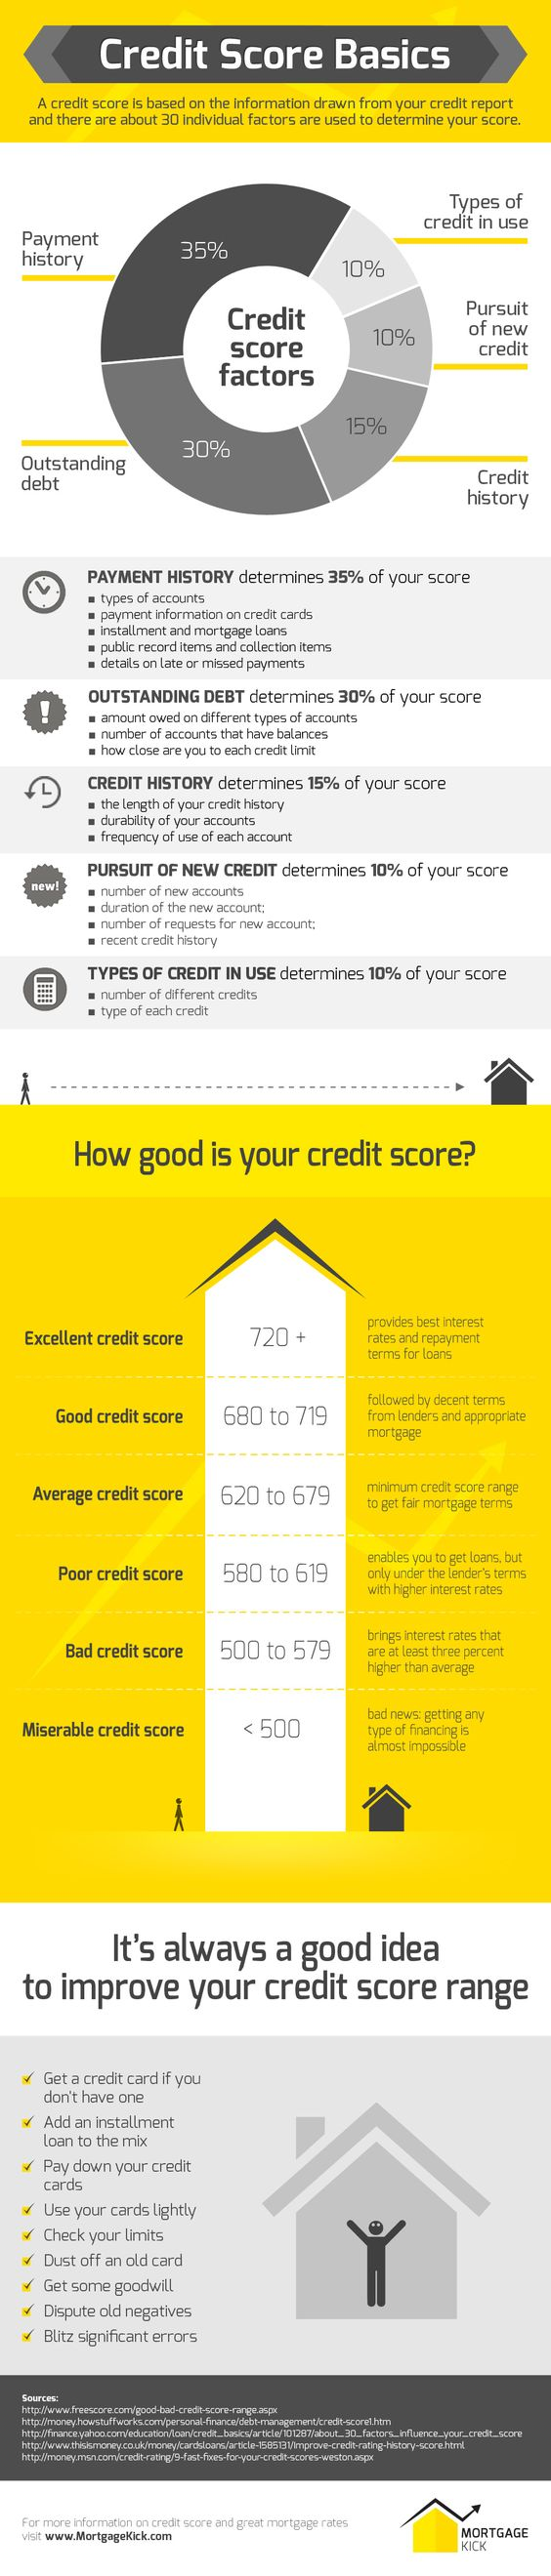 Credit score is one of the most important factors when applying for a mortgage loan. This credit score infographic presents the most important factors and shares excellent tips on how you can keep a high credit score to get approved for a mortgage.